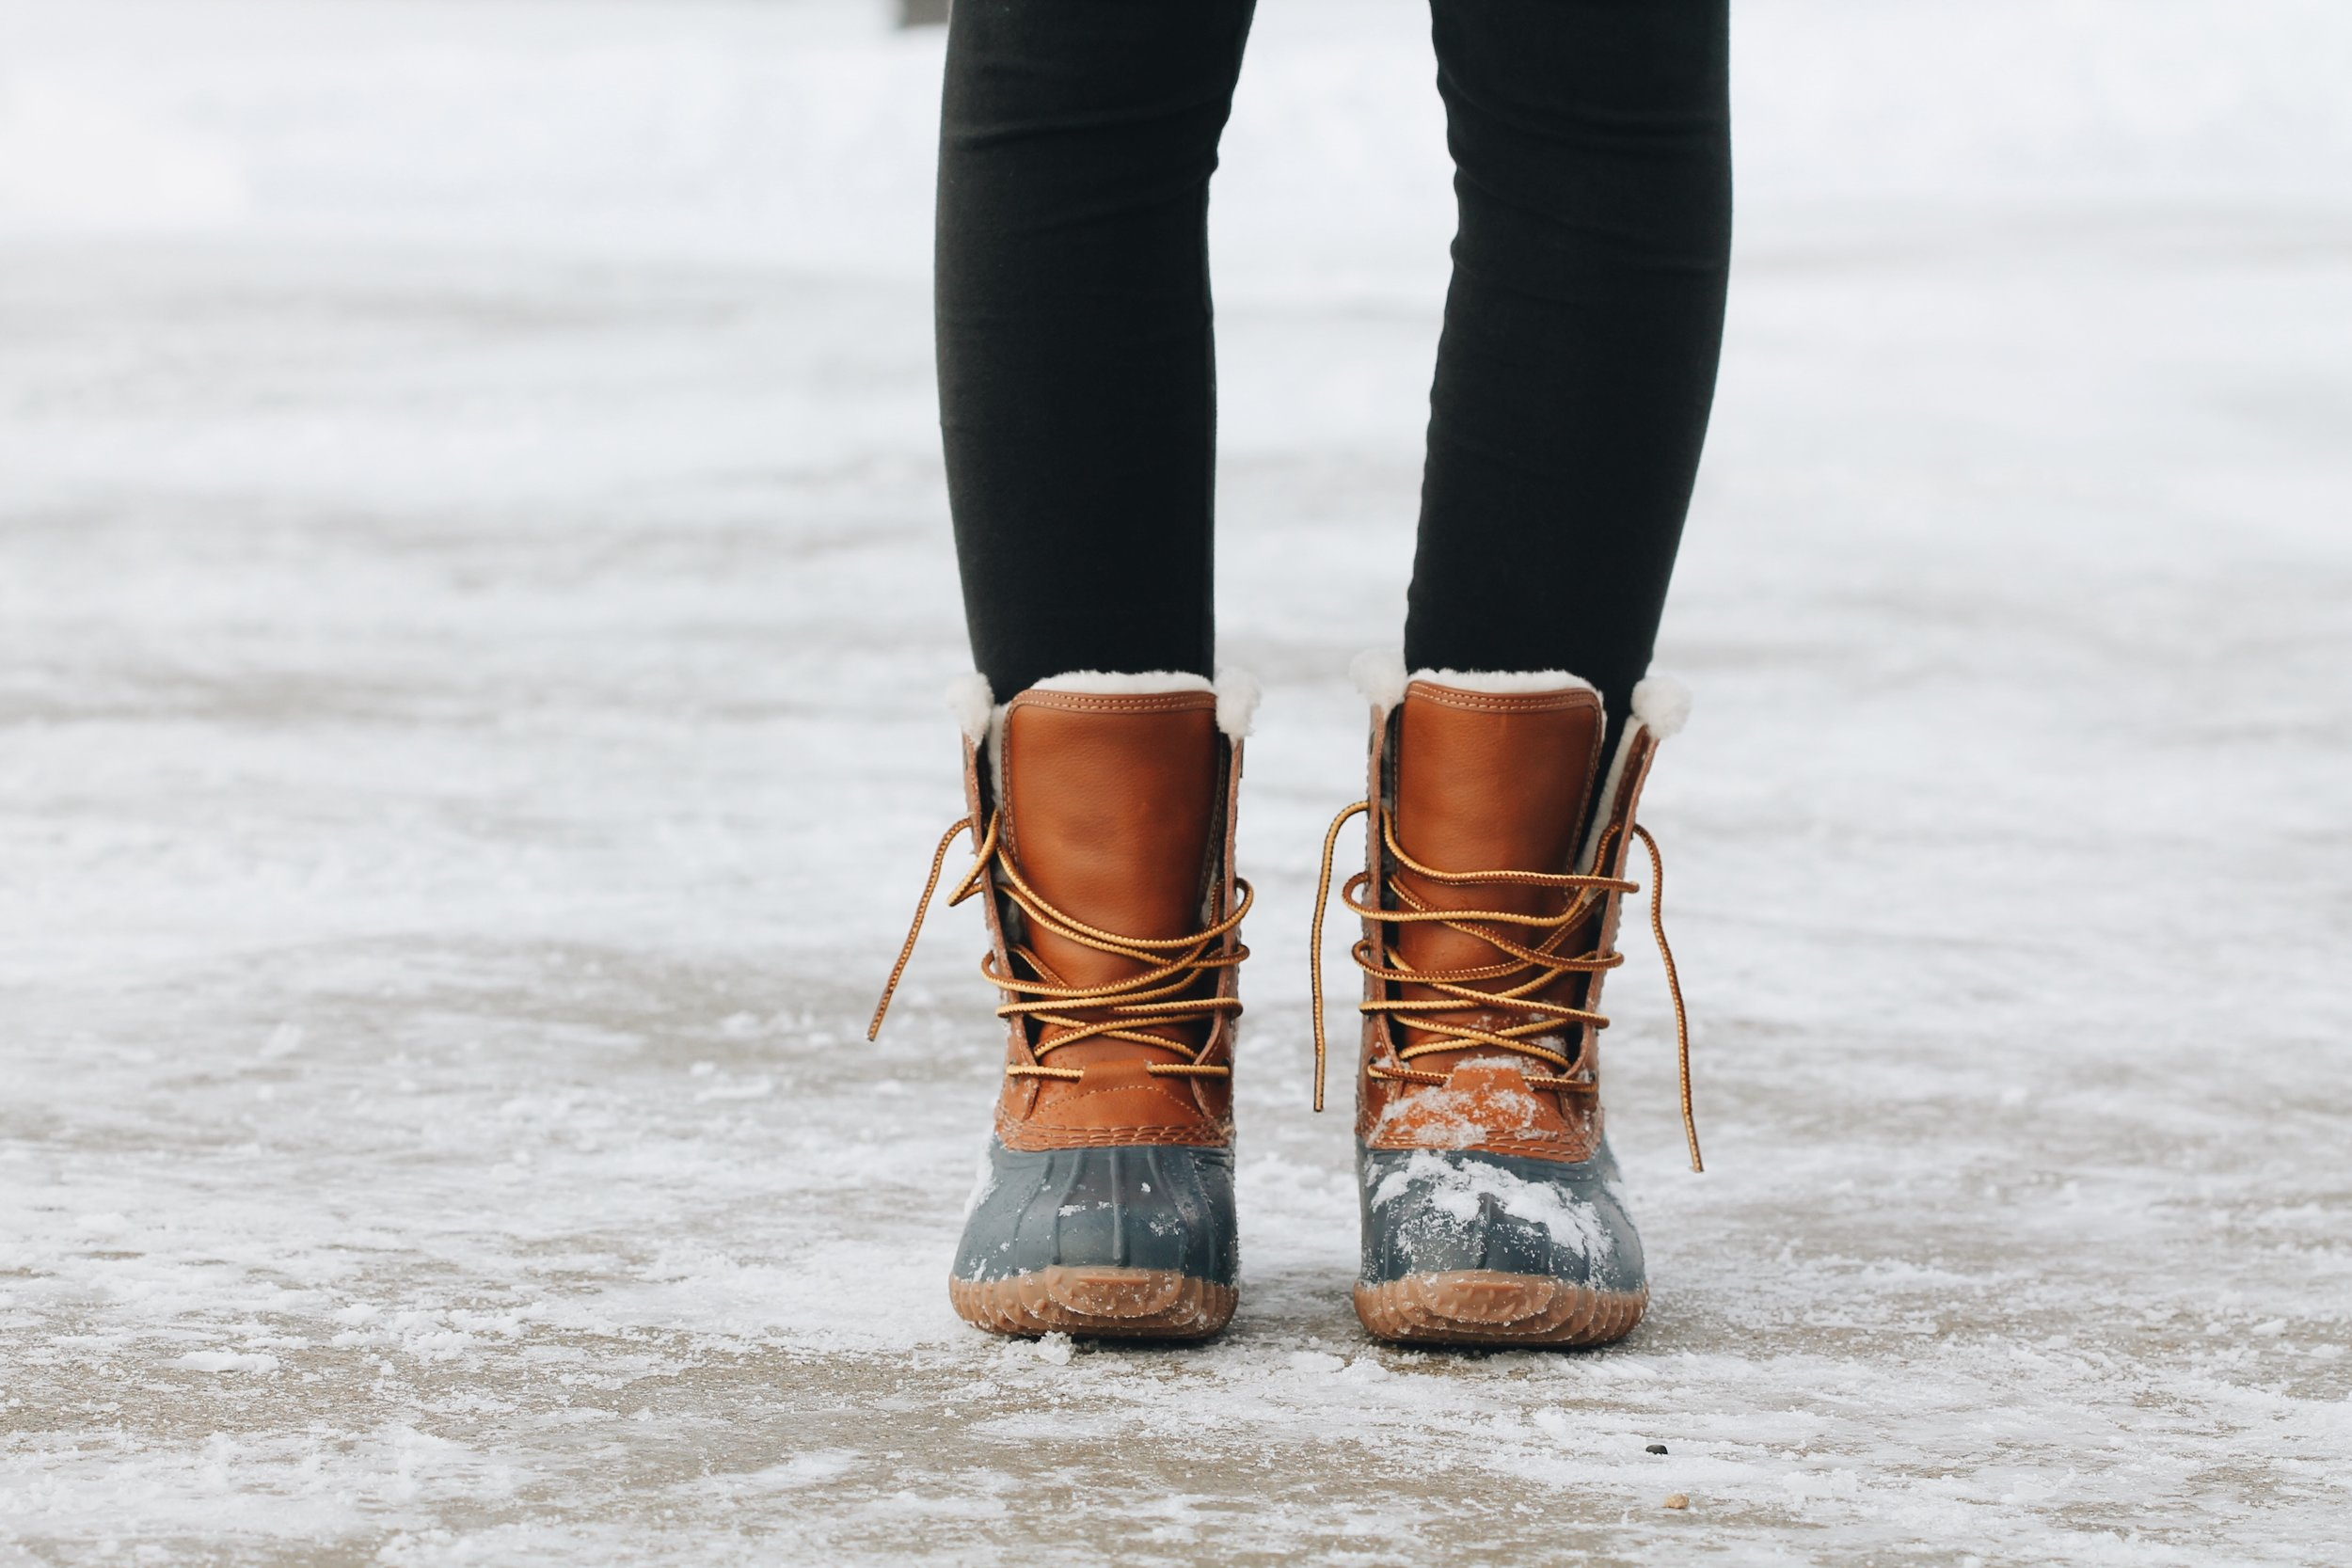 Legs of female wearing snow-covered snow boots standing on icy sidewalk